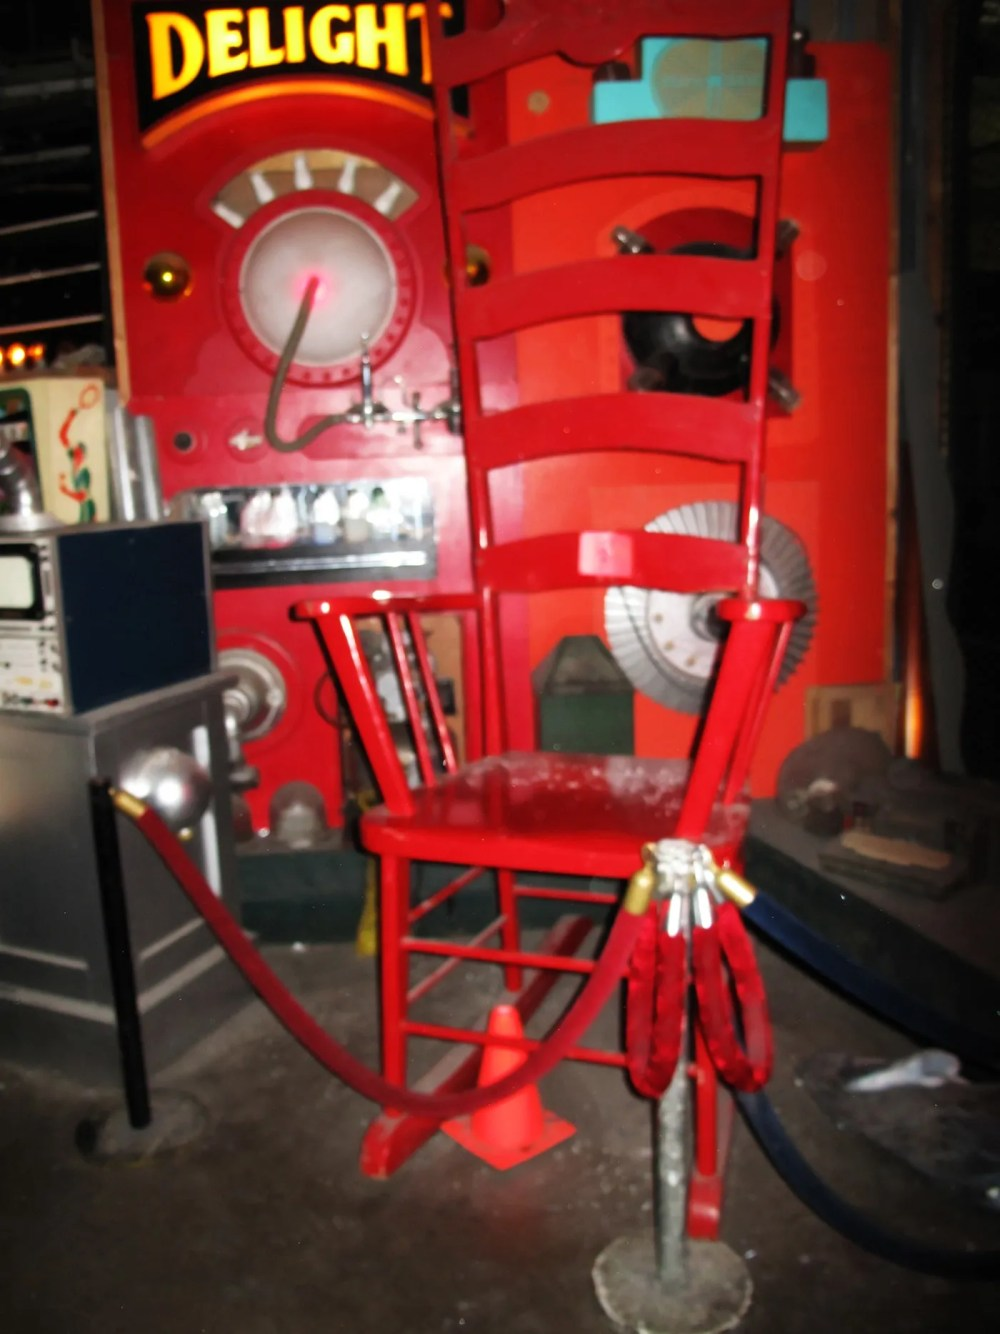 Giant Chair at City Museum's Museum of Mirth, Mystery, and Mayhem in St. Louis, Missouri.